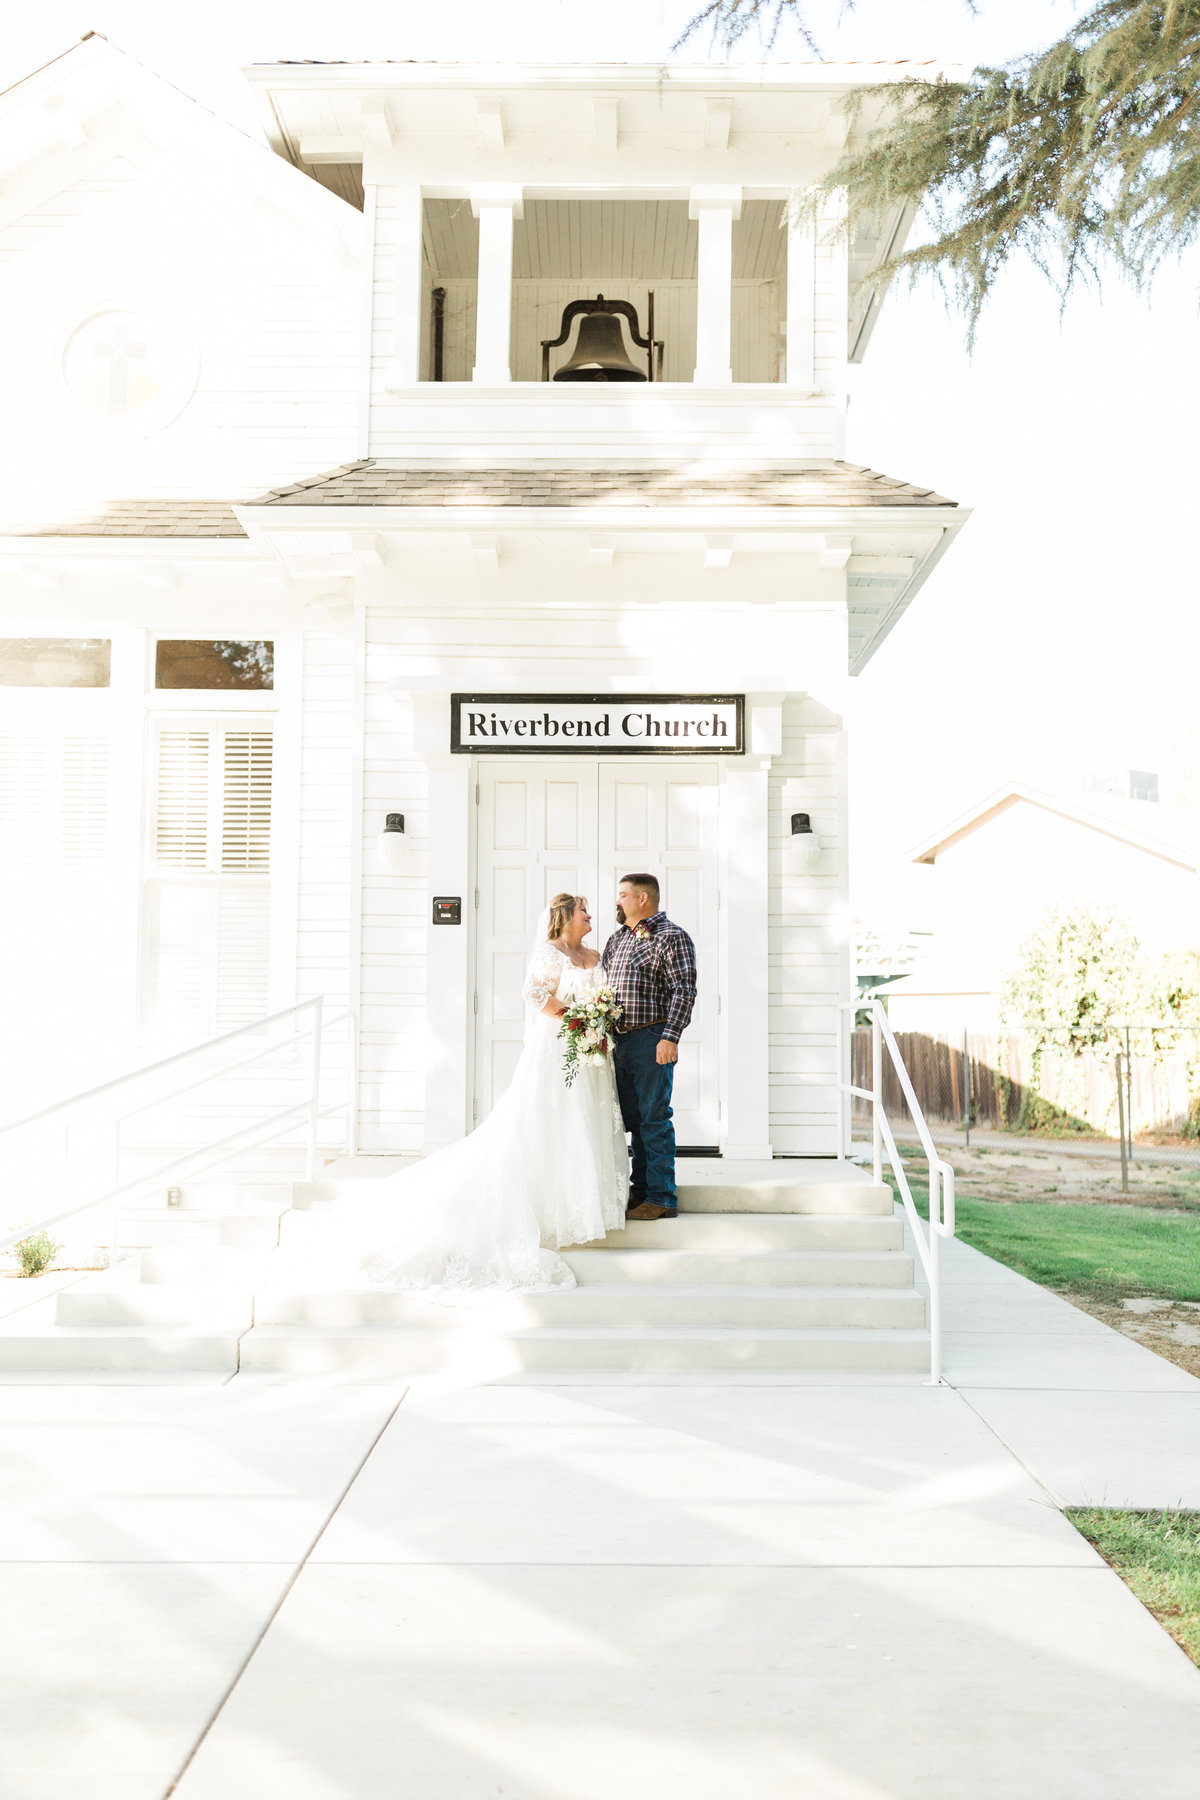 newlywed couple posing in front of a small white church in Kingsburg